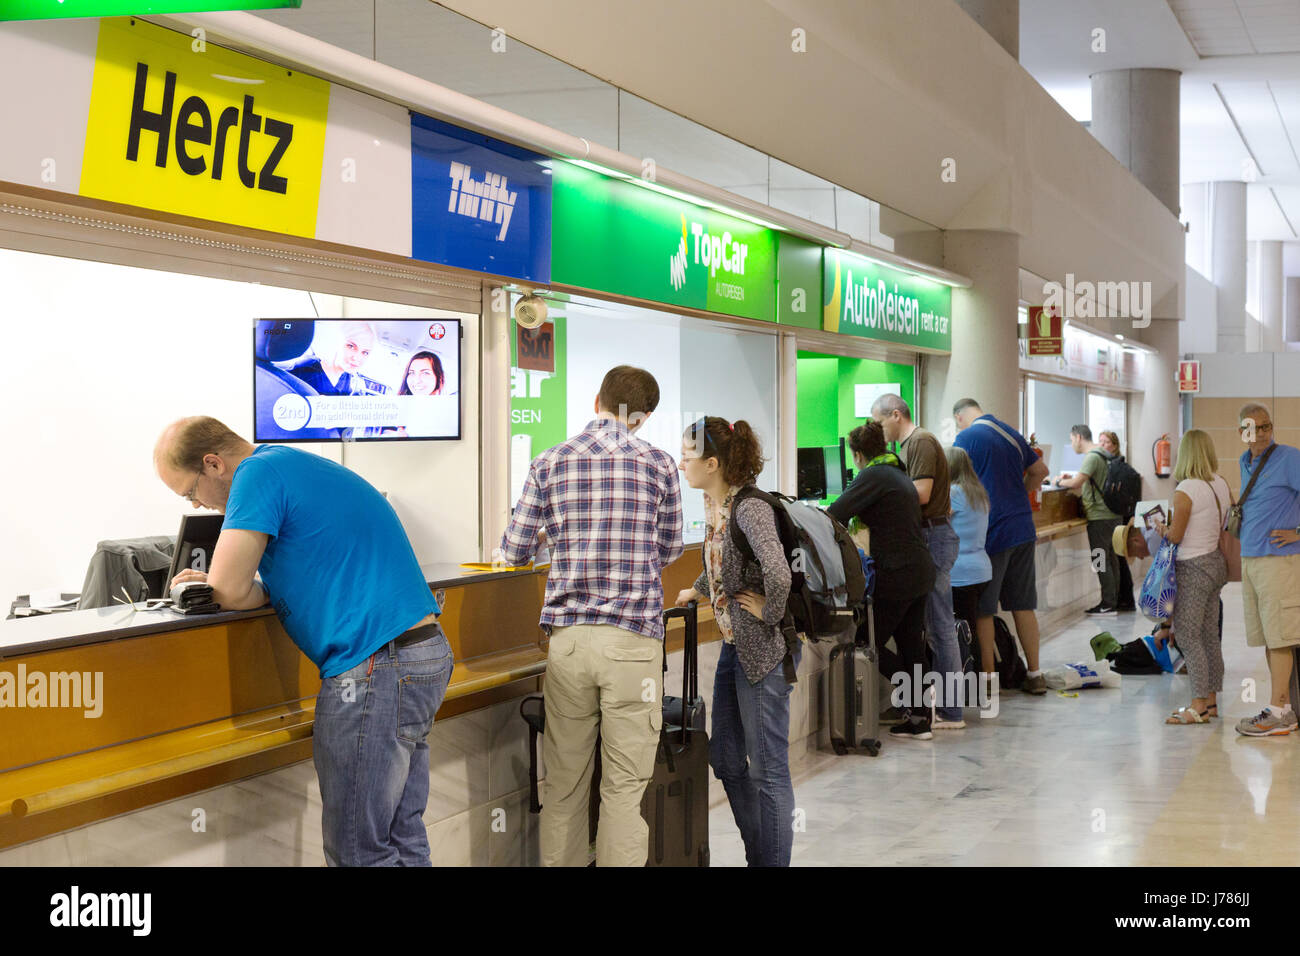 People Renting Hire Cars At The Car Rental Counter Lanzarote